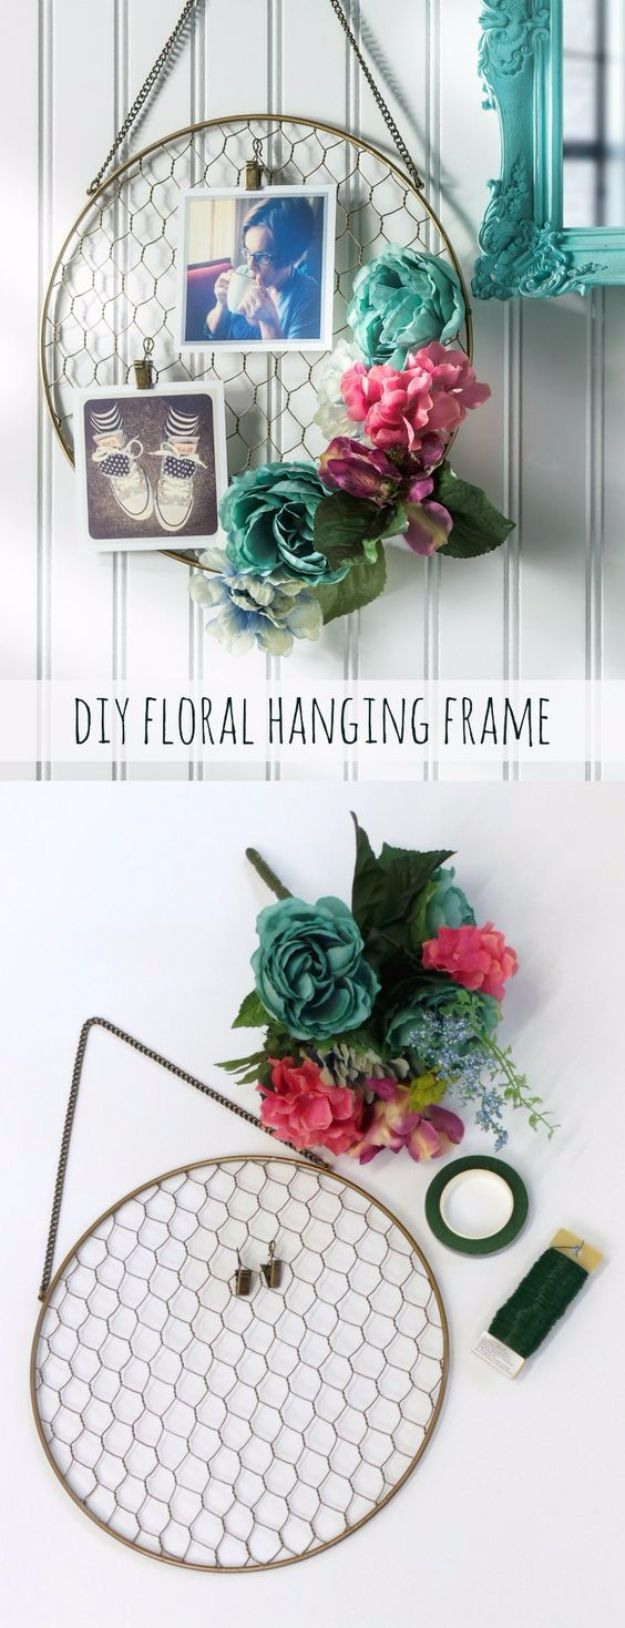 diy ideas chicken wire crafts -Pretty DIY Floral Hanging Frame - Rustic Farmhouse Decor Tutorials With Chickenwire and Easy Vintage Shabby Chic Home Decor for Kitchen, Living Room and Bathroom - Creative Country Crafts #diy #crafts